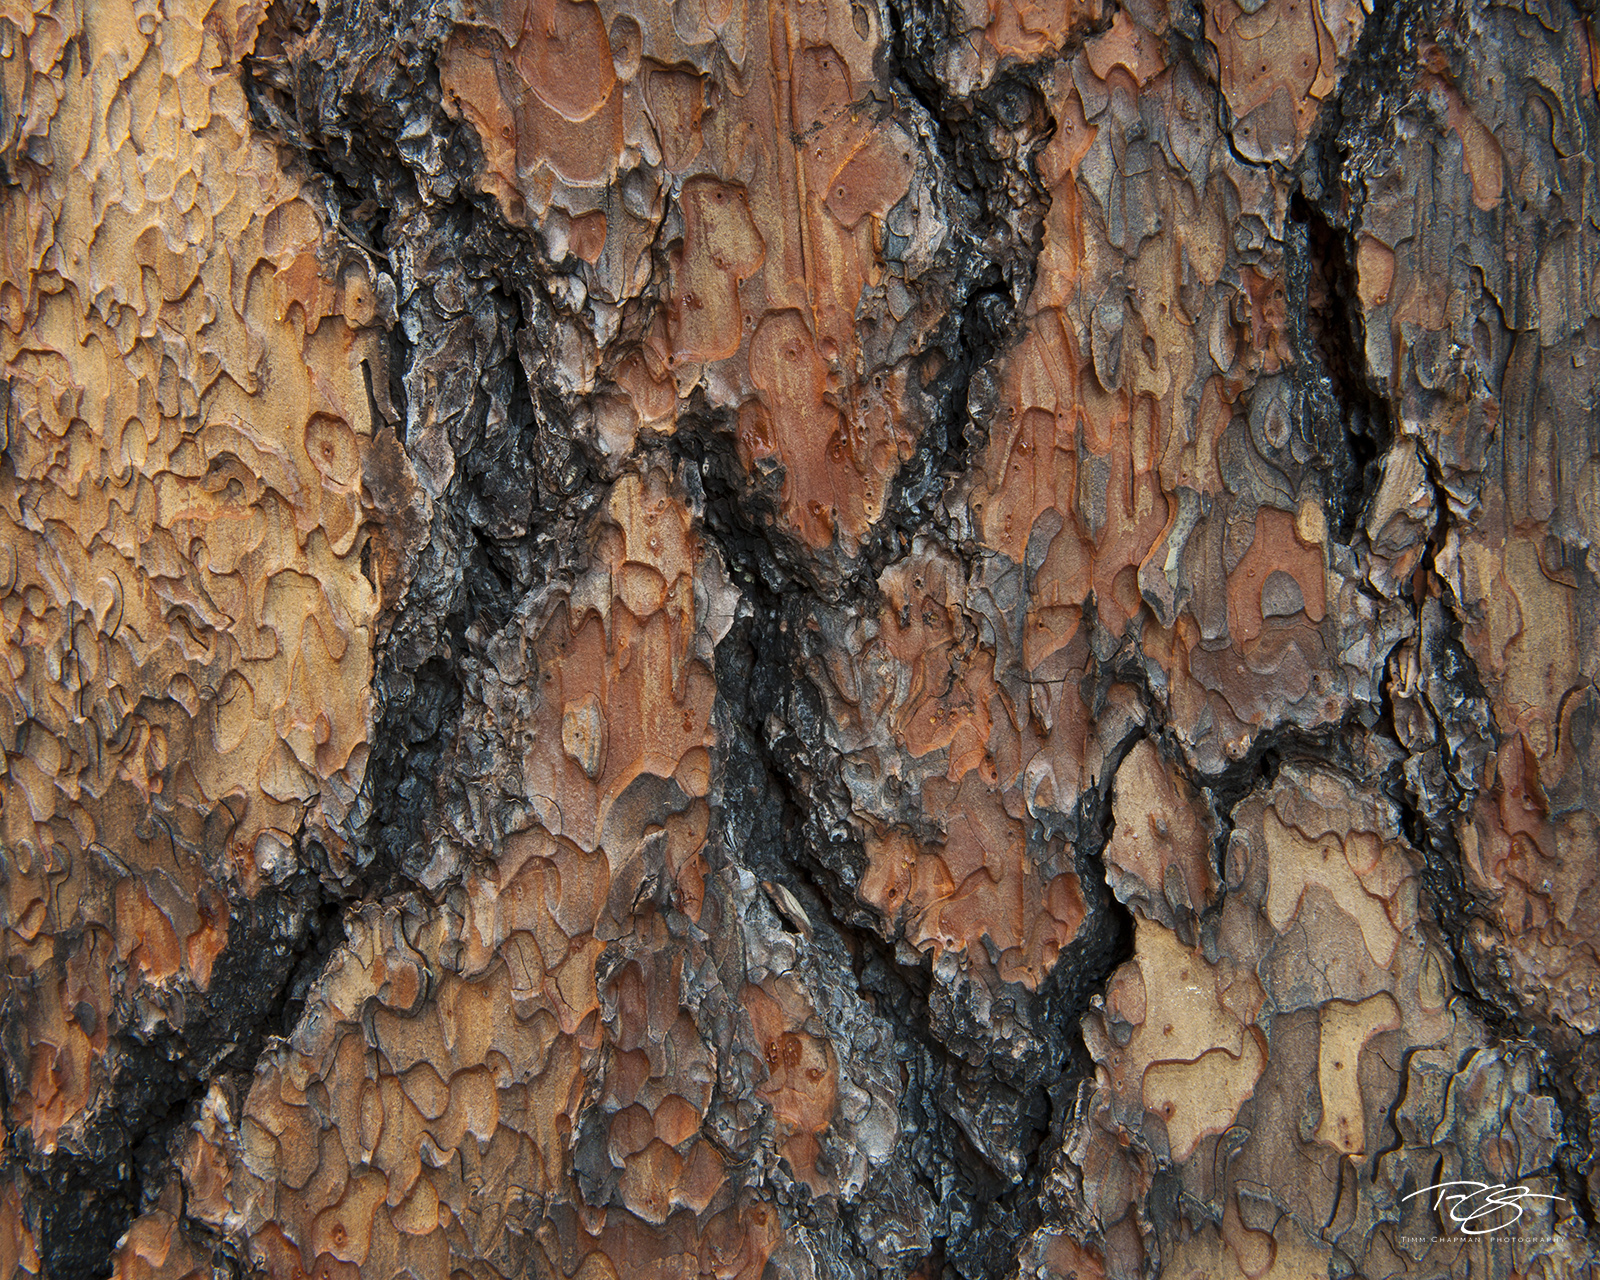 arizona, ponderosa pine, ponderosa, bark, abstract, tree, tree bark, pine tree, red, orange, beige, black, rugged, scales, photo